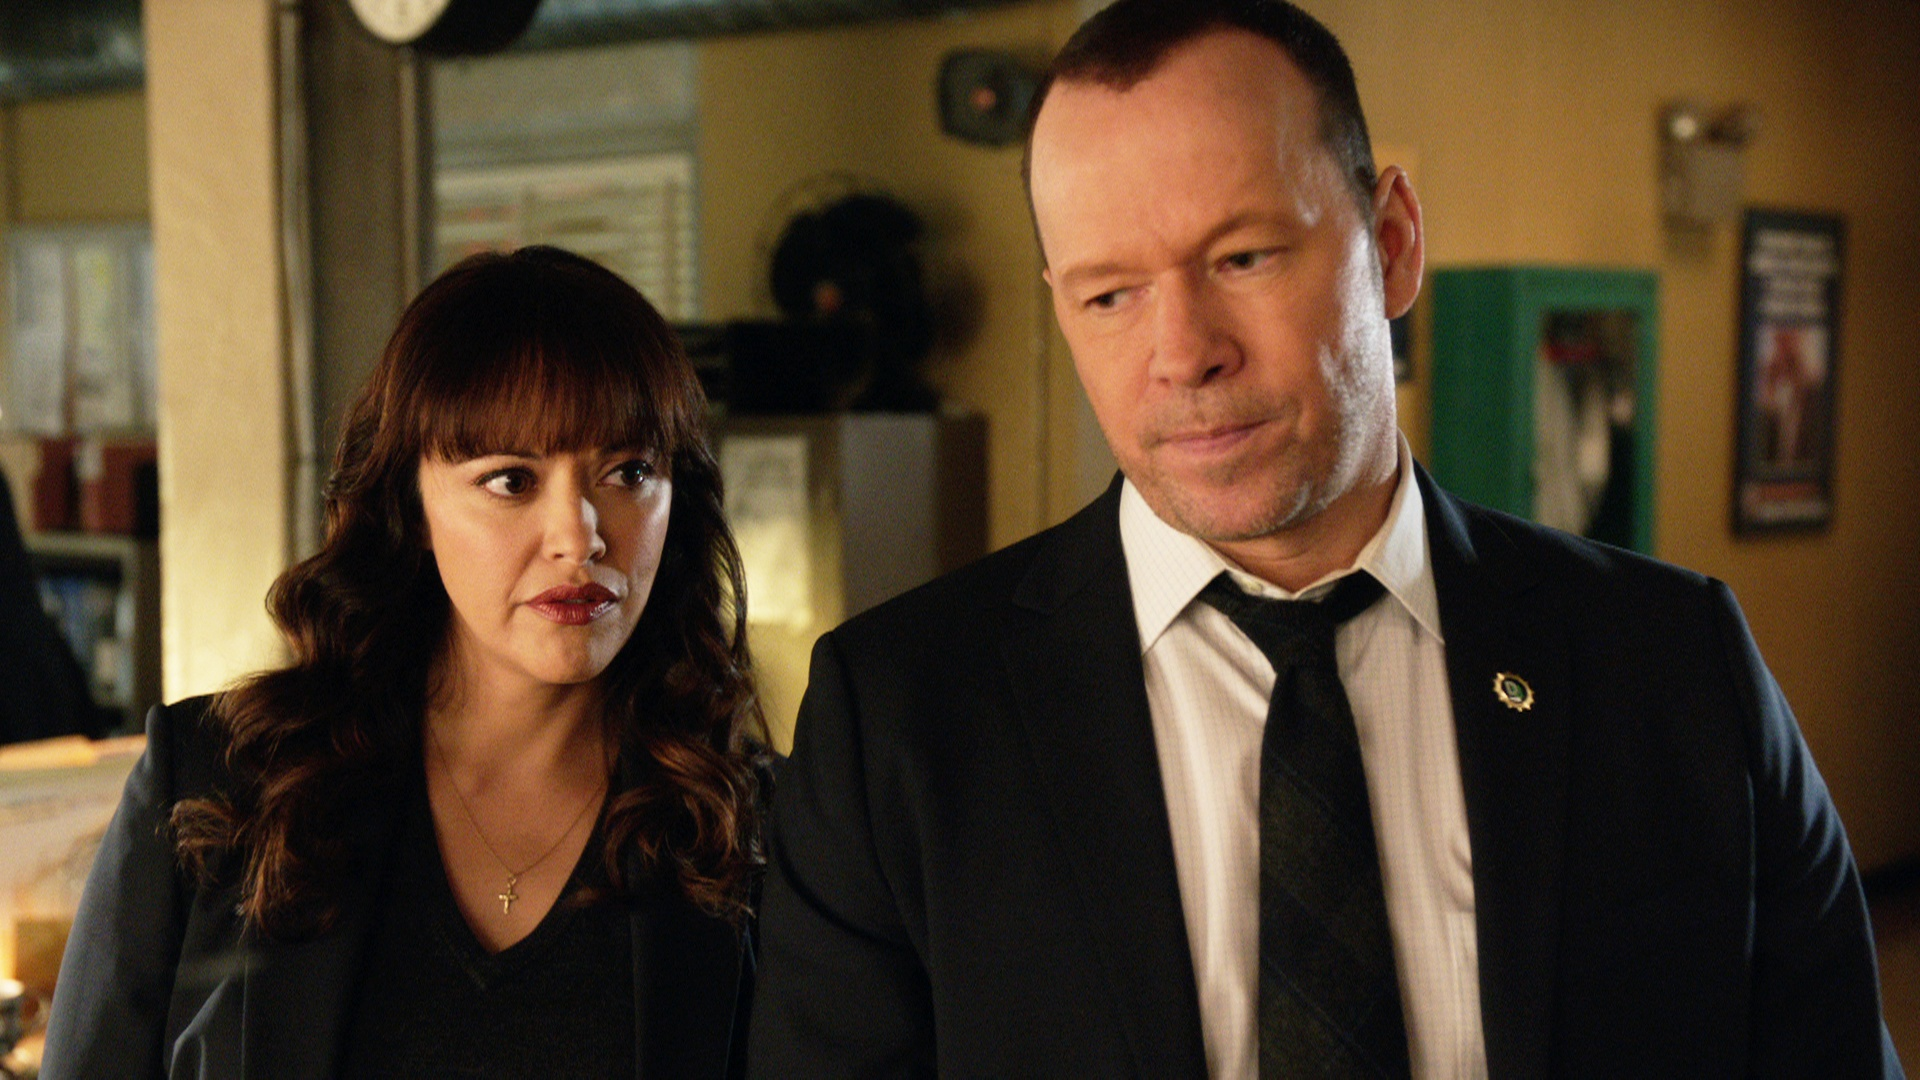 Marisa Ramirez as Maria Baez and Donnie Wahlberg as Danny Reagan on Blue Bloods